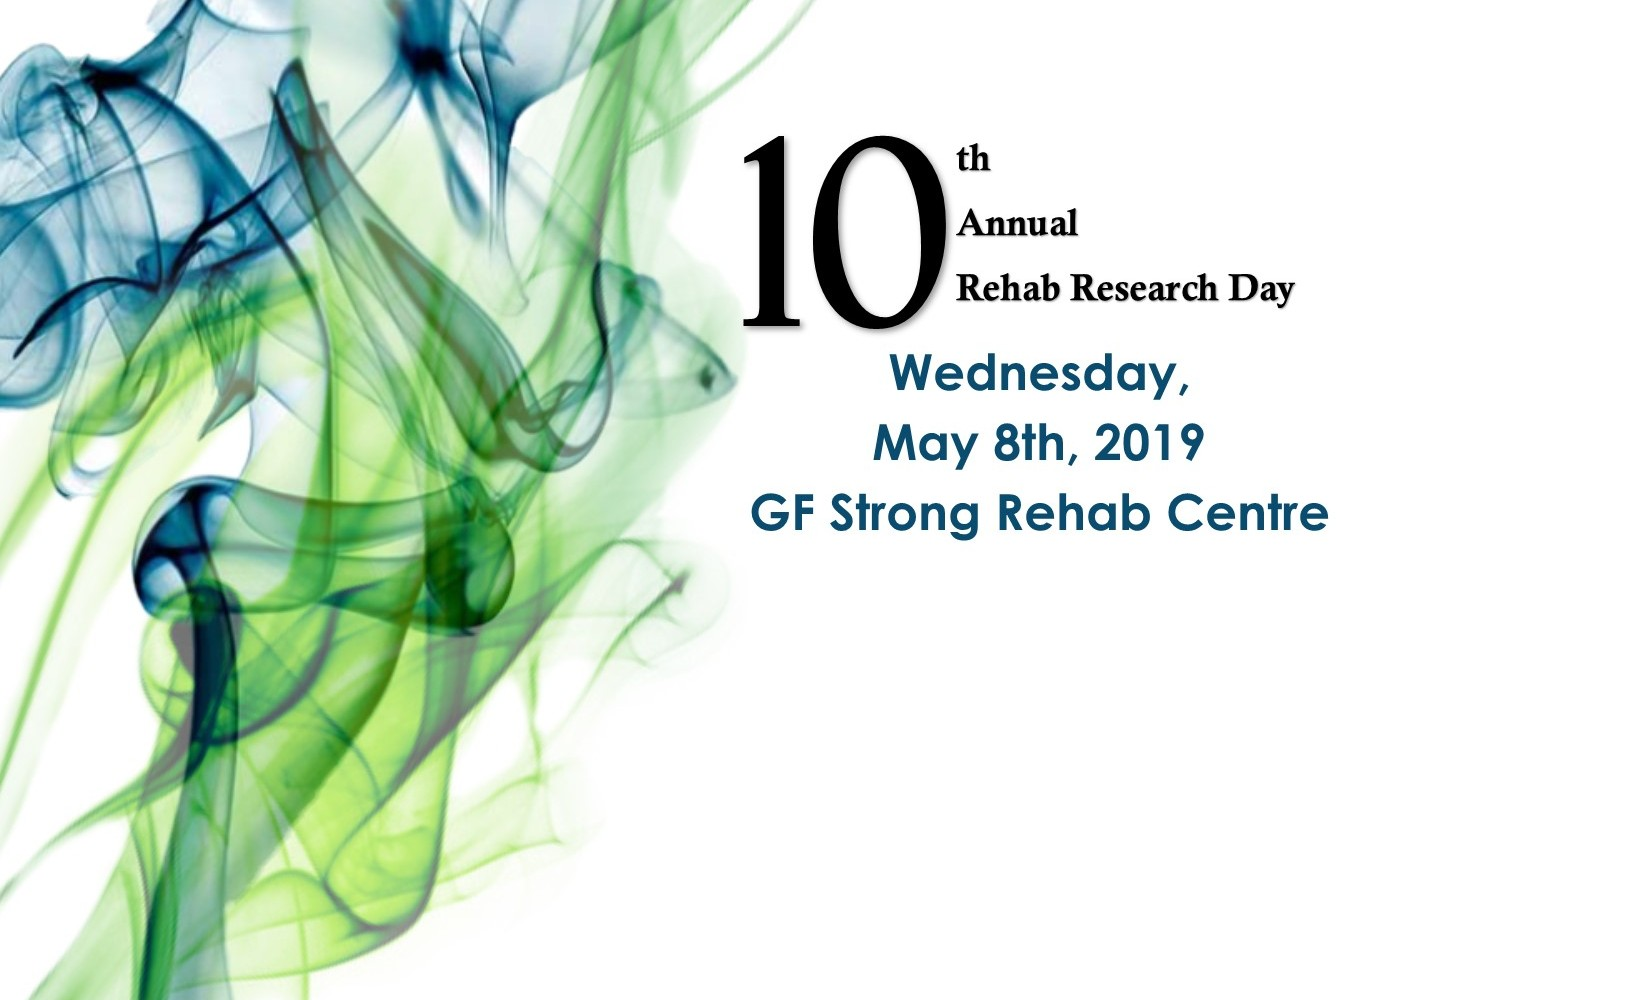 10th Annual GF Strong Rehab Research Day